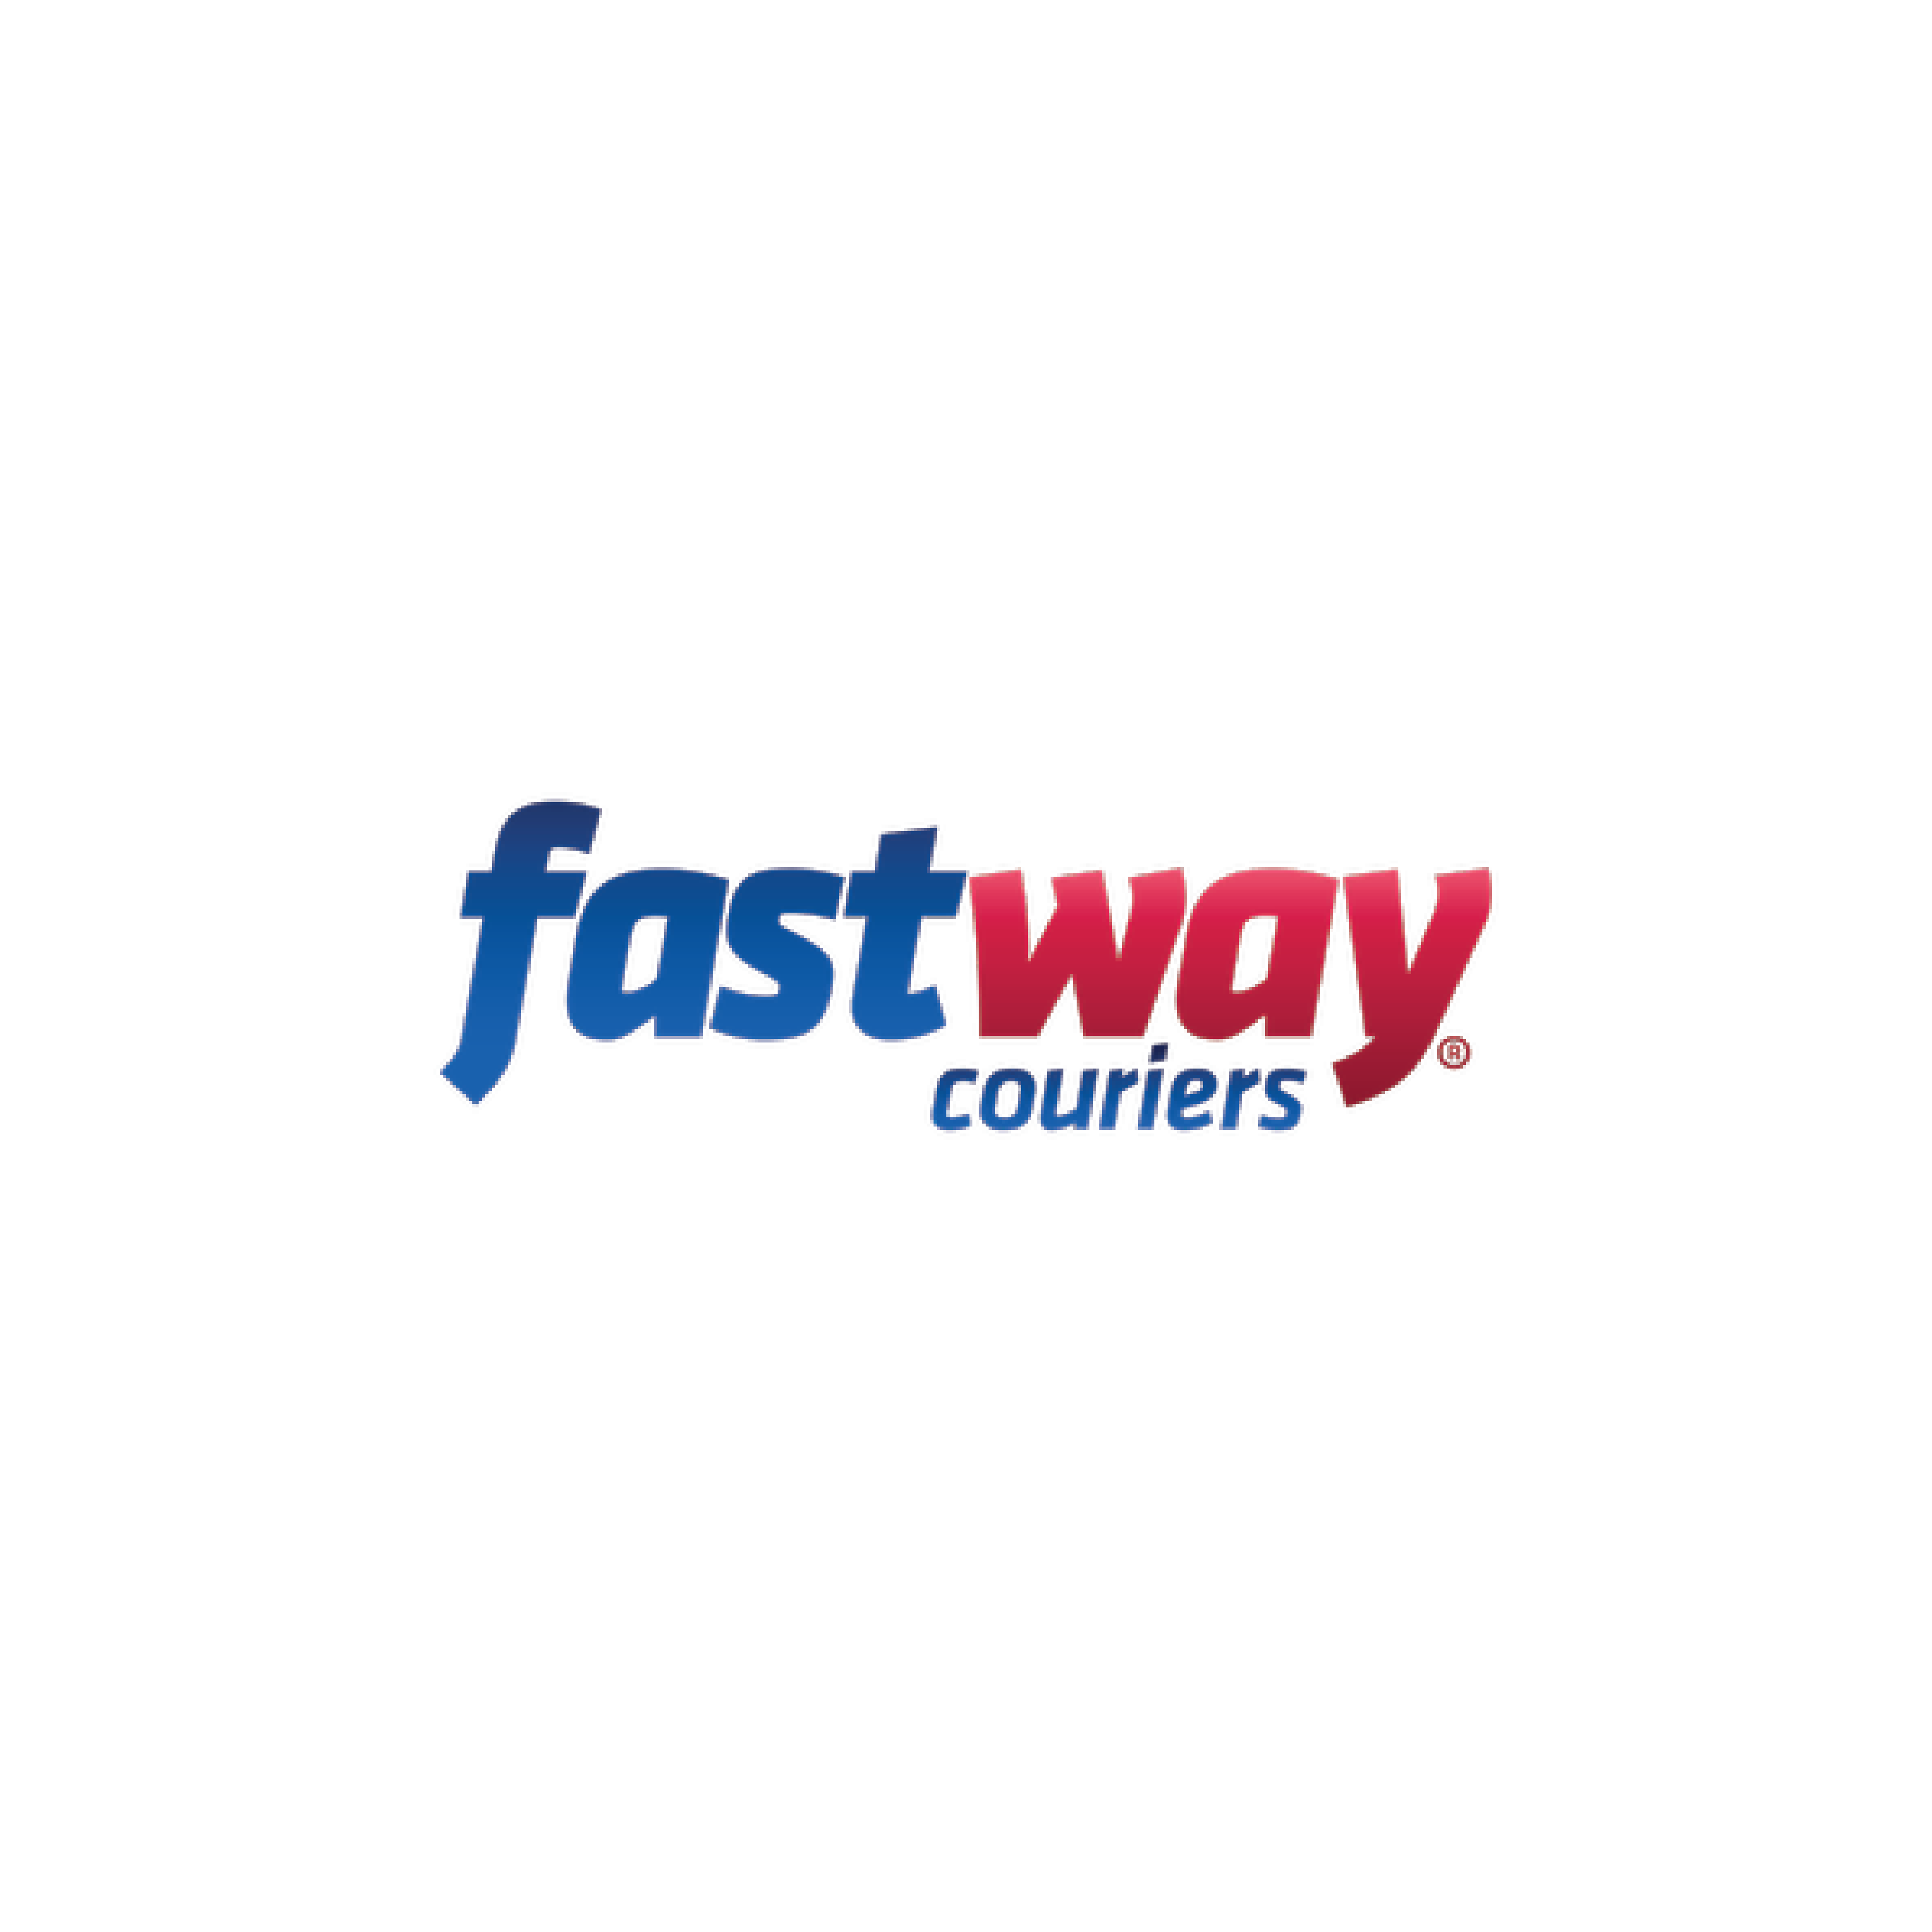 Fast Way Couriers Shipedge Integration